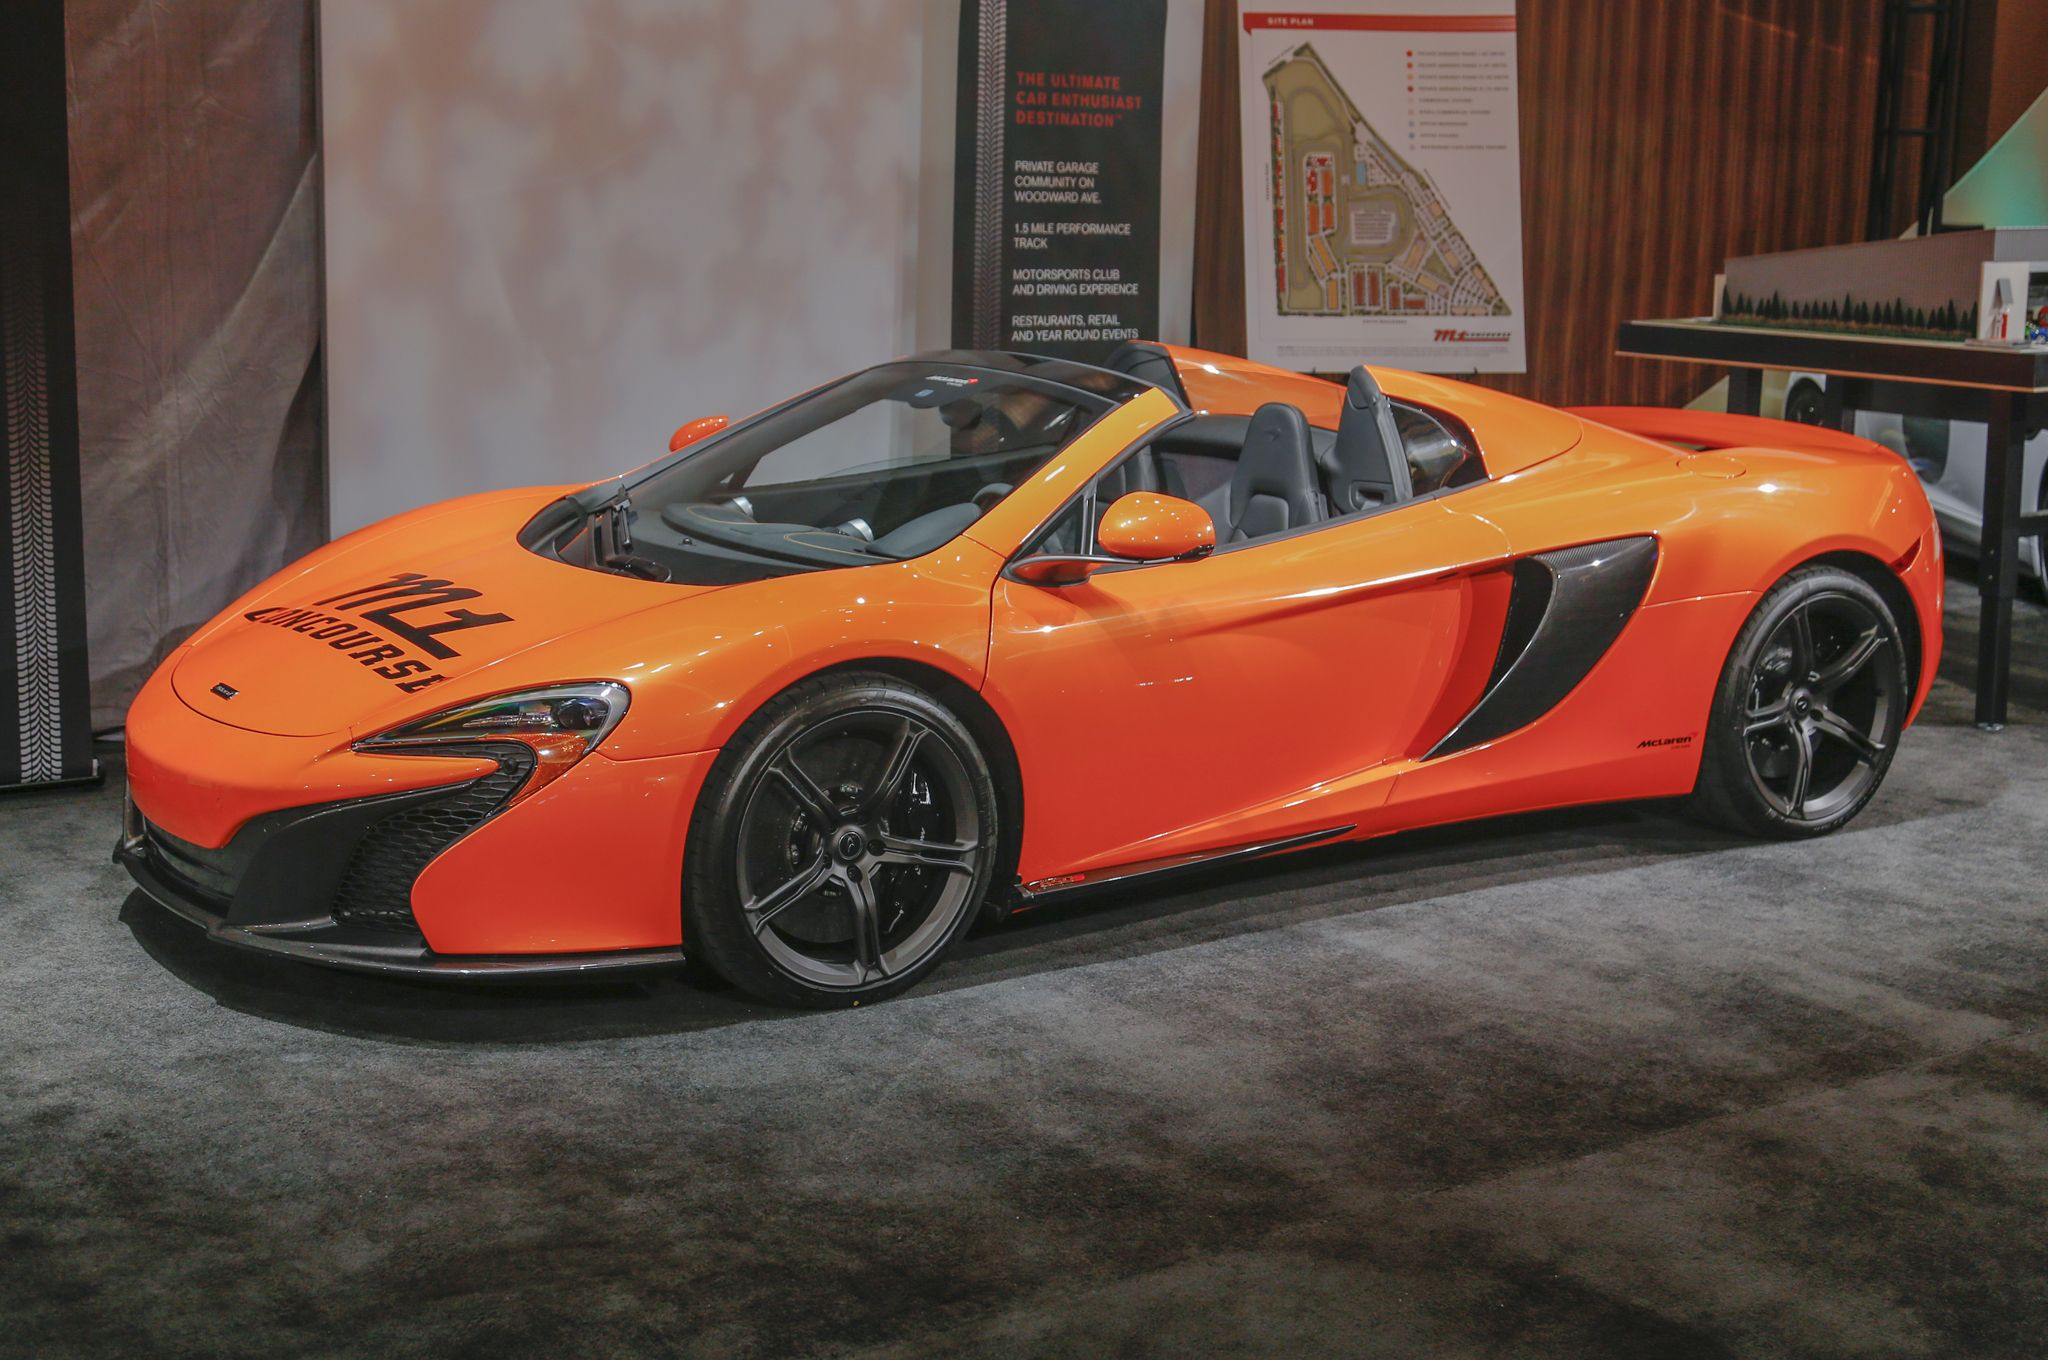 Motor City Exotics: The Gallery at the 2015 Detroit Auto Show McLaren 650S Spider